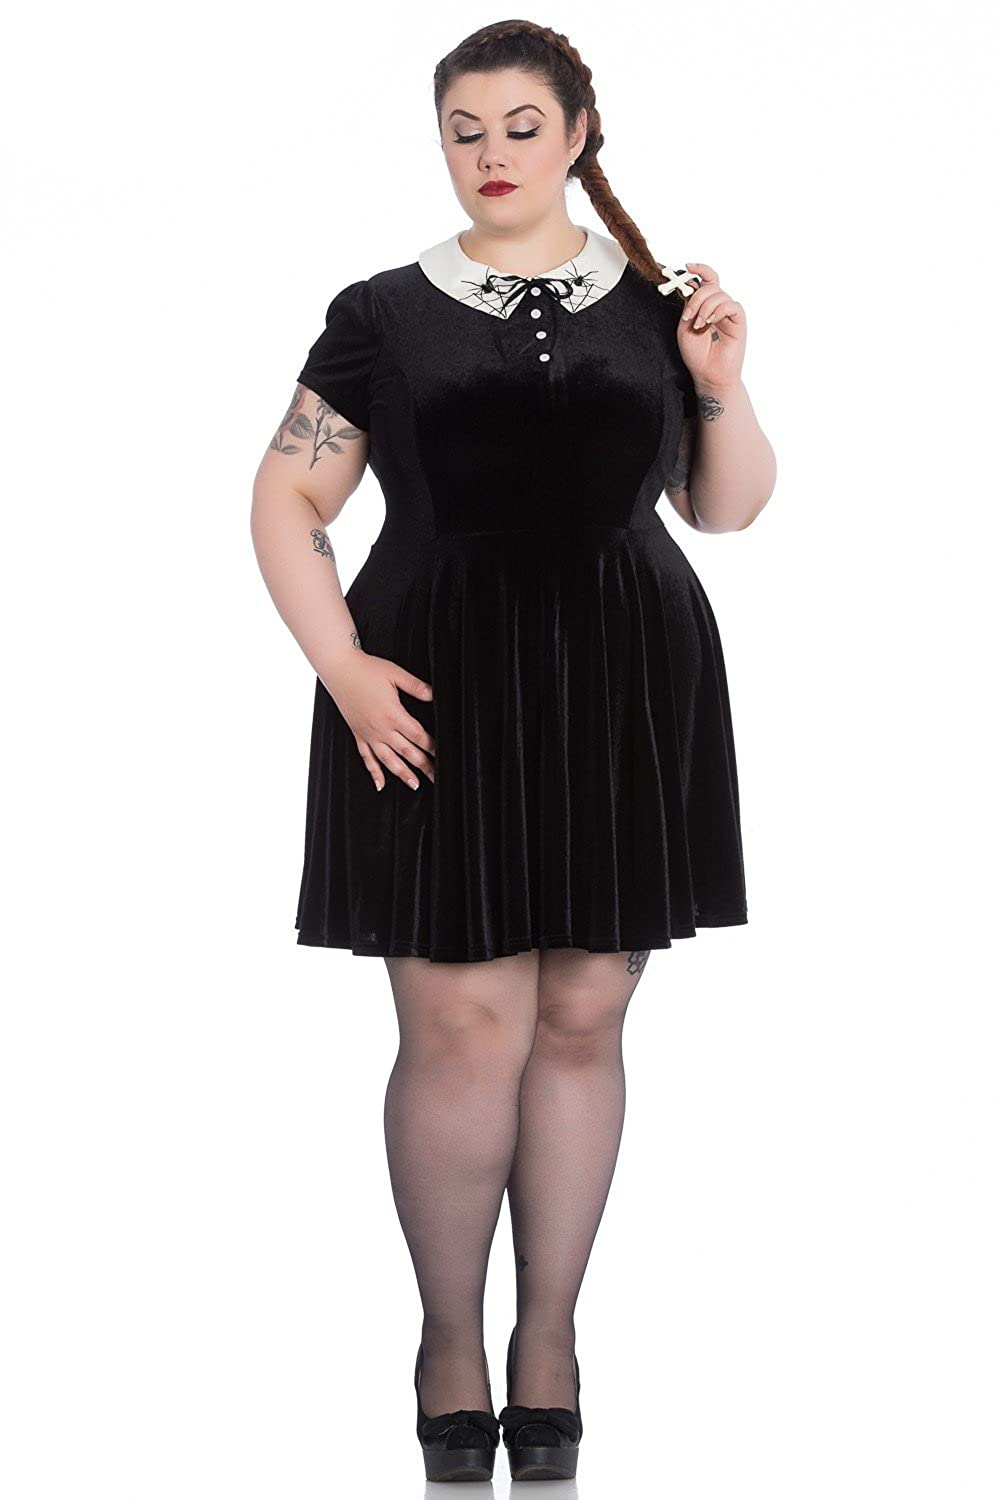 40c5025859d Hell Bunny Plus Size Gothic Wednesday Addams Spiderweb Miss Muffet Mini  Dress at Amazon Women s Clothing store